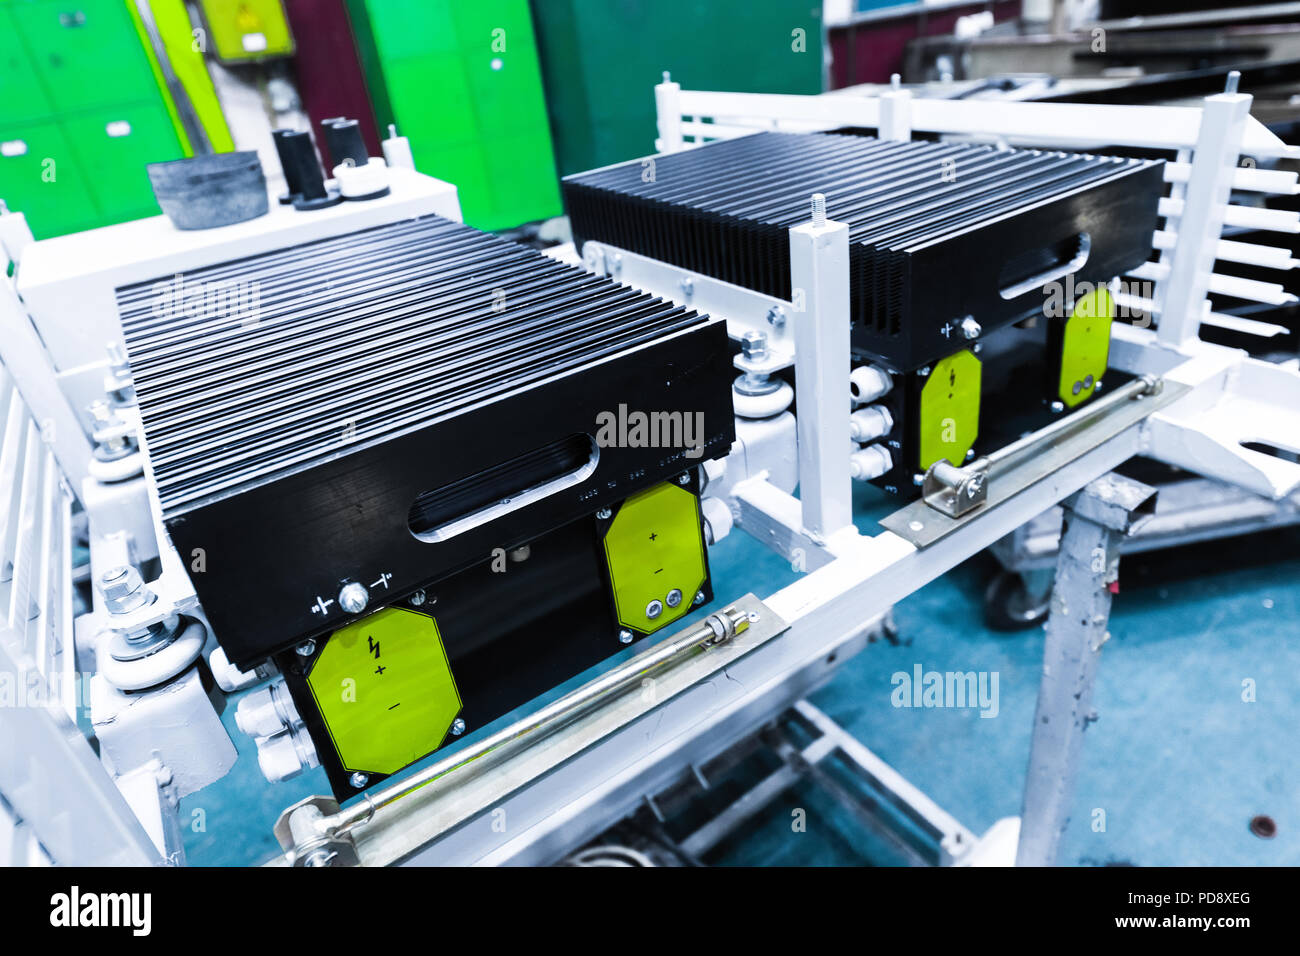 Equipment for car production - Stock Image